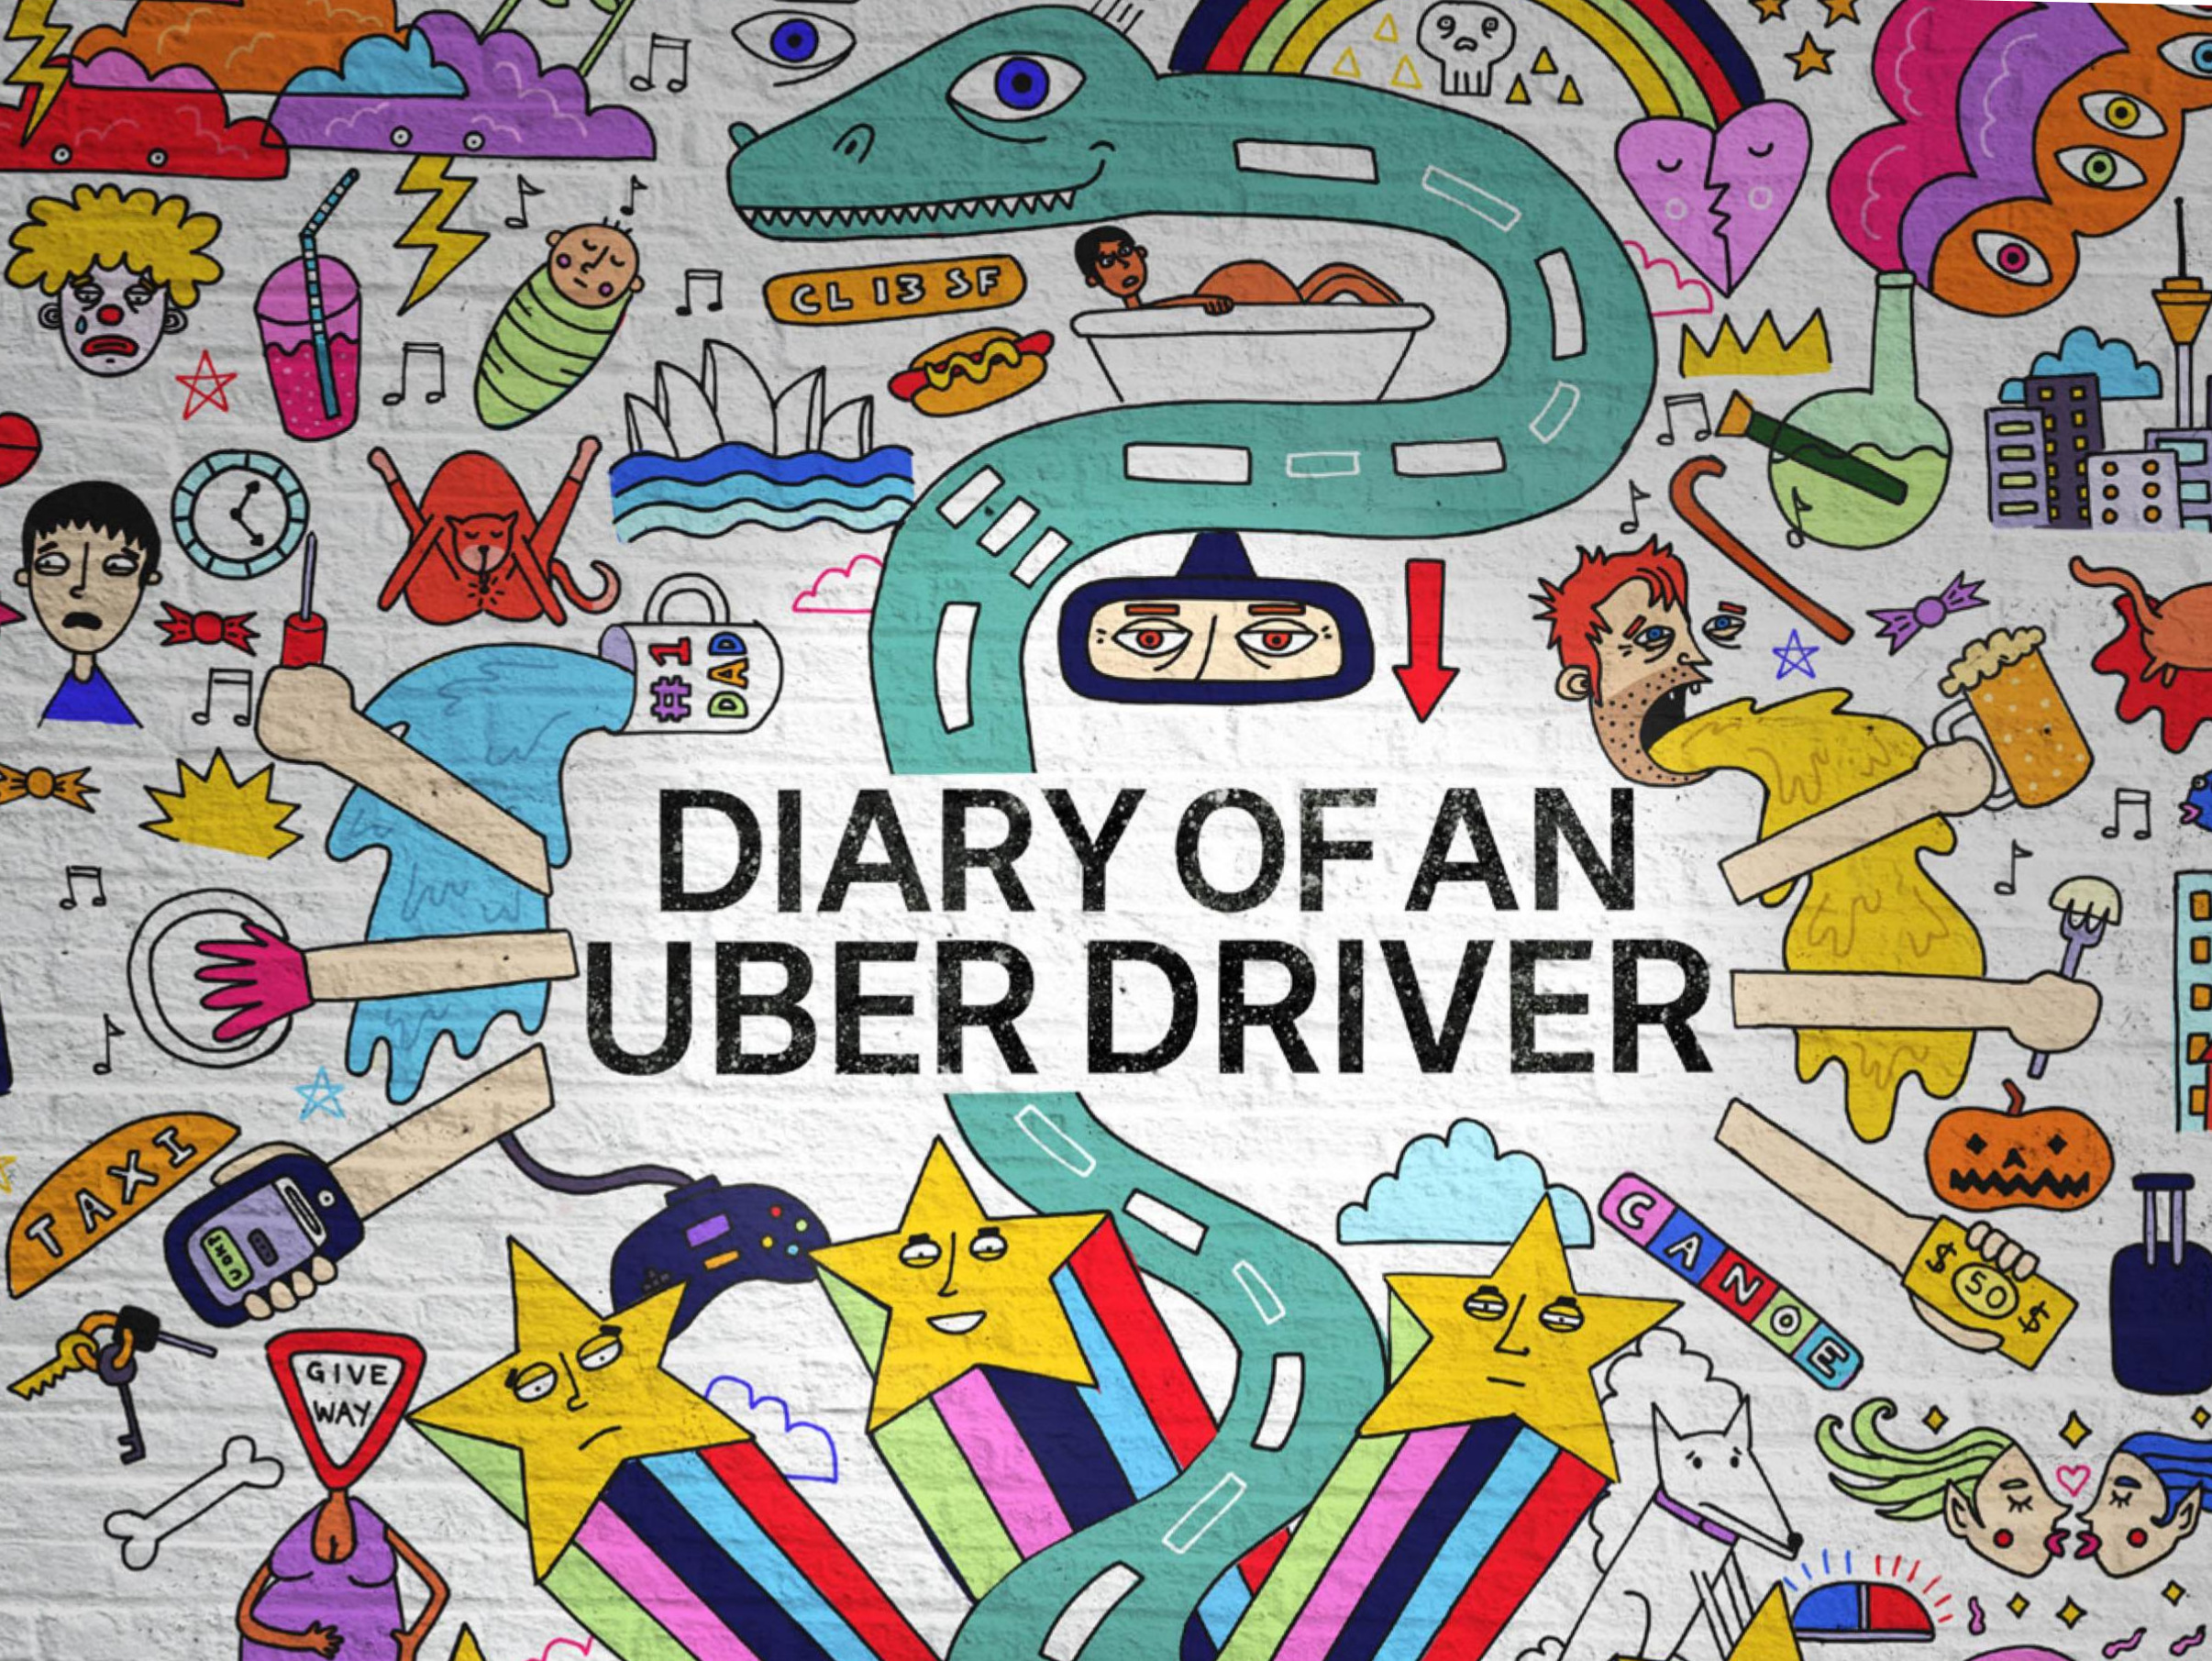 From Blog to Book to TV Show: The Journey of an Uber Driver